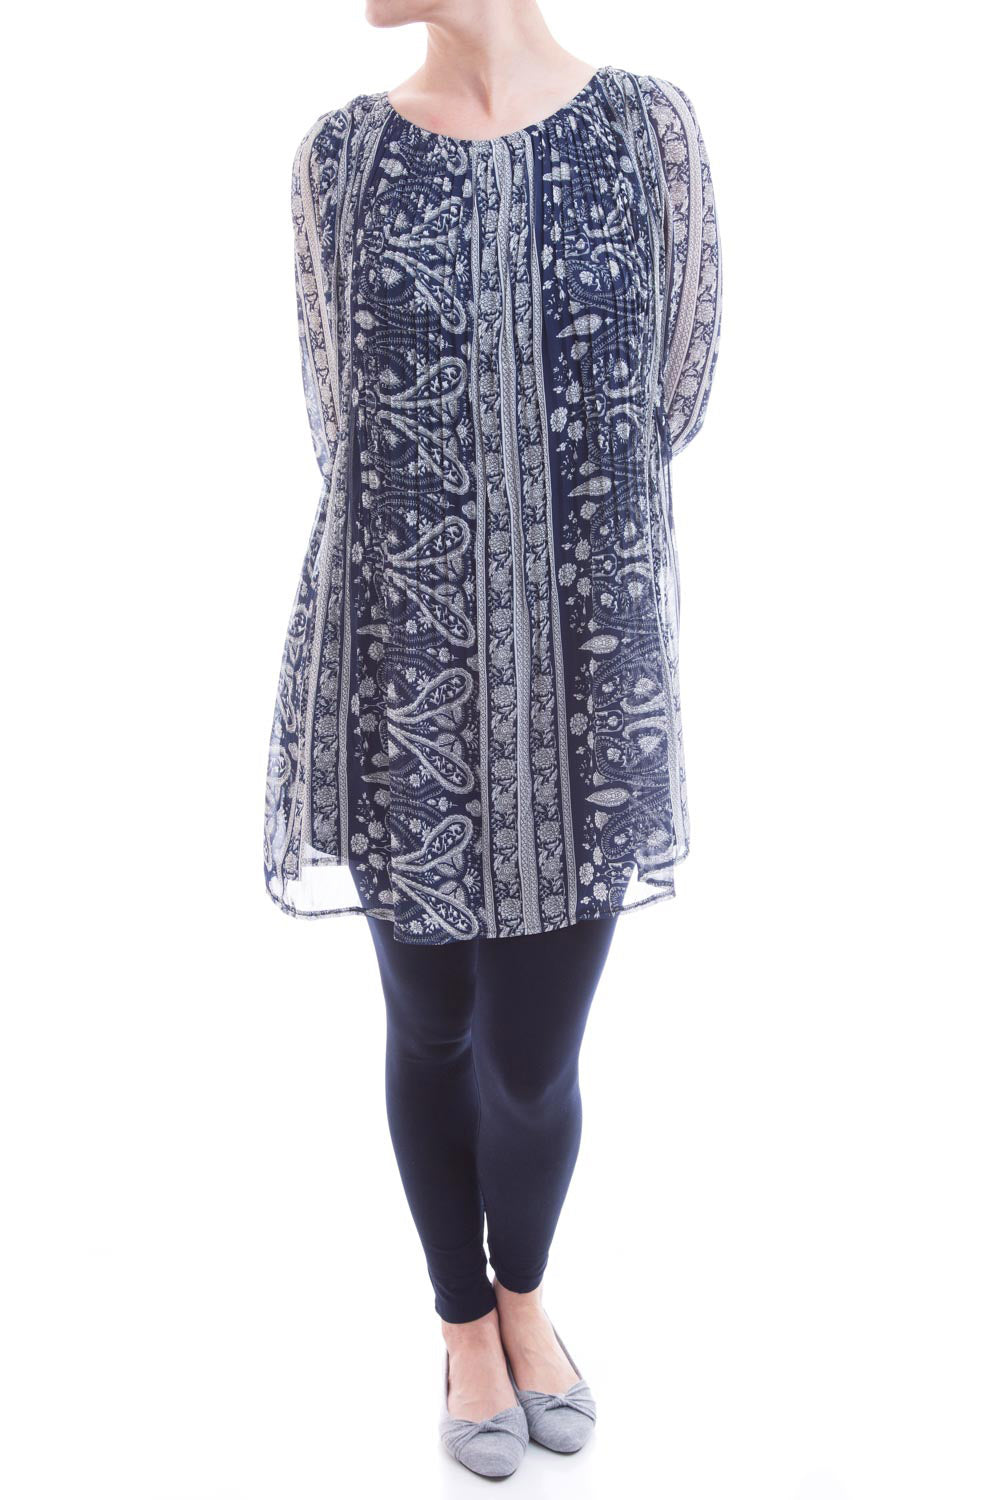 Type 2 Nice and Graceful Tunic